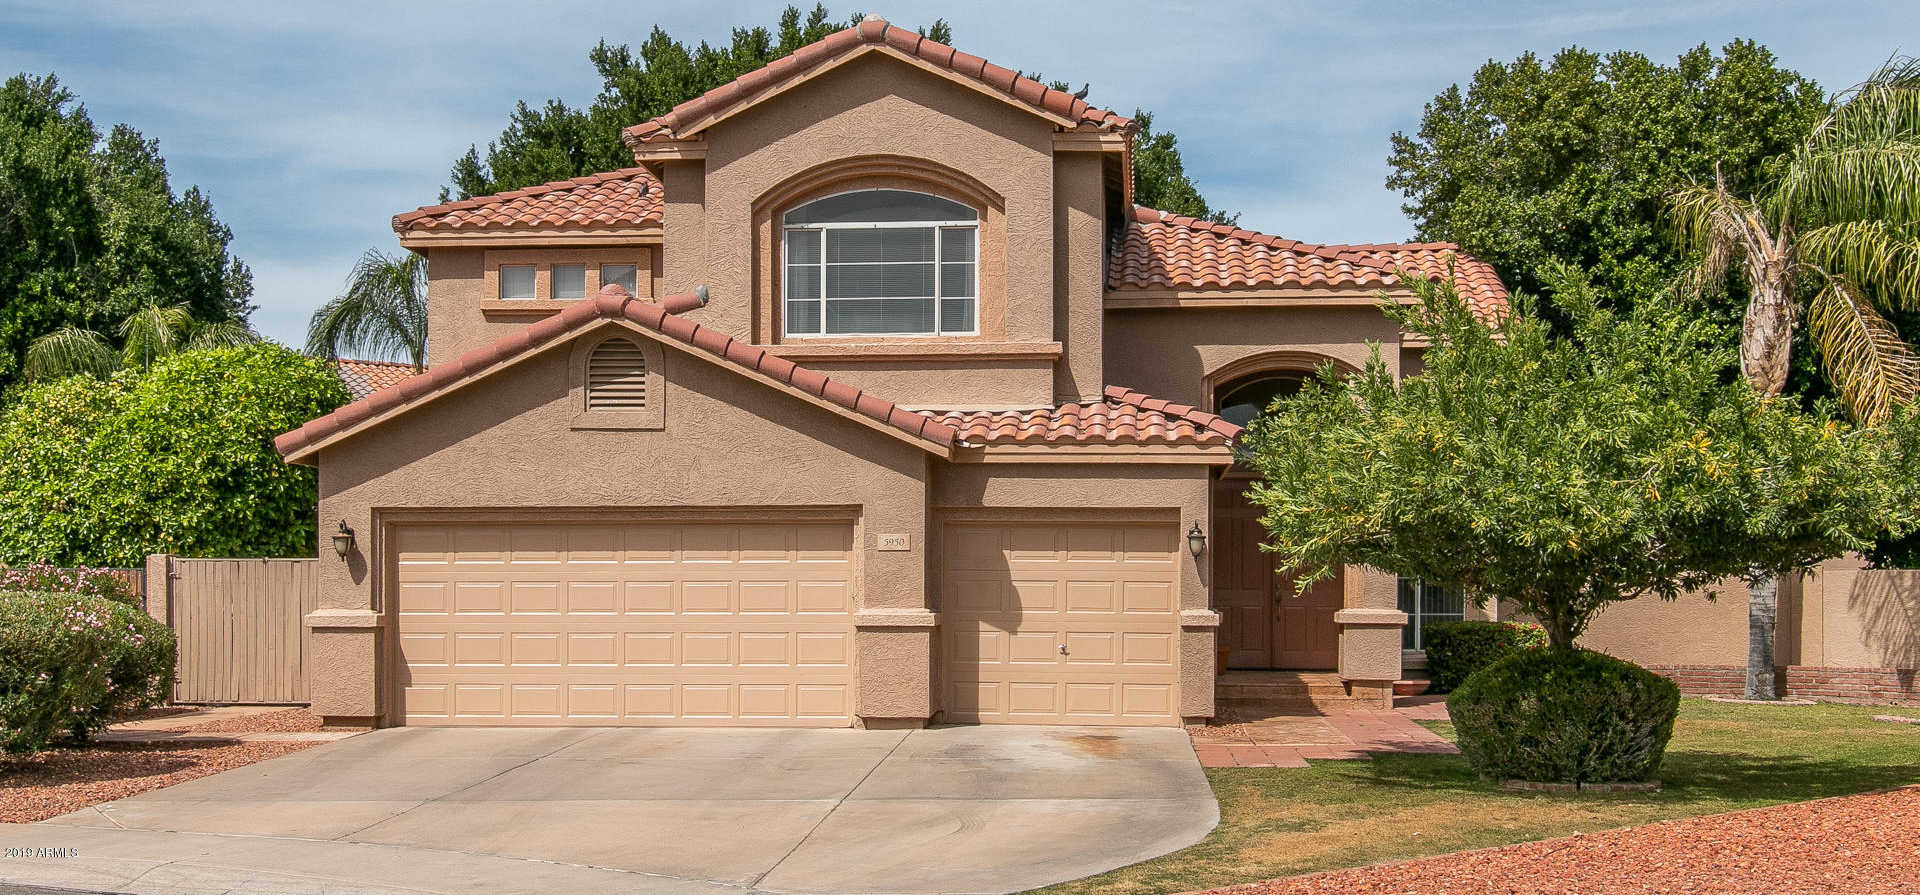 $424,850 - 4Br/3Ba - Home for Sale in Arrowhead Ranch Parcels 3 & 4, Glendale